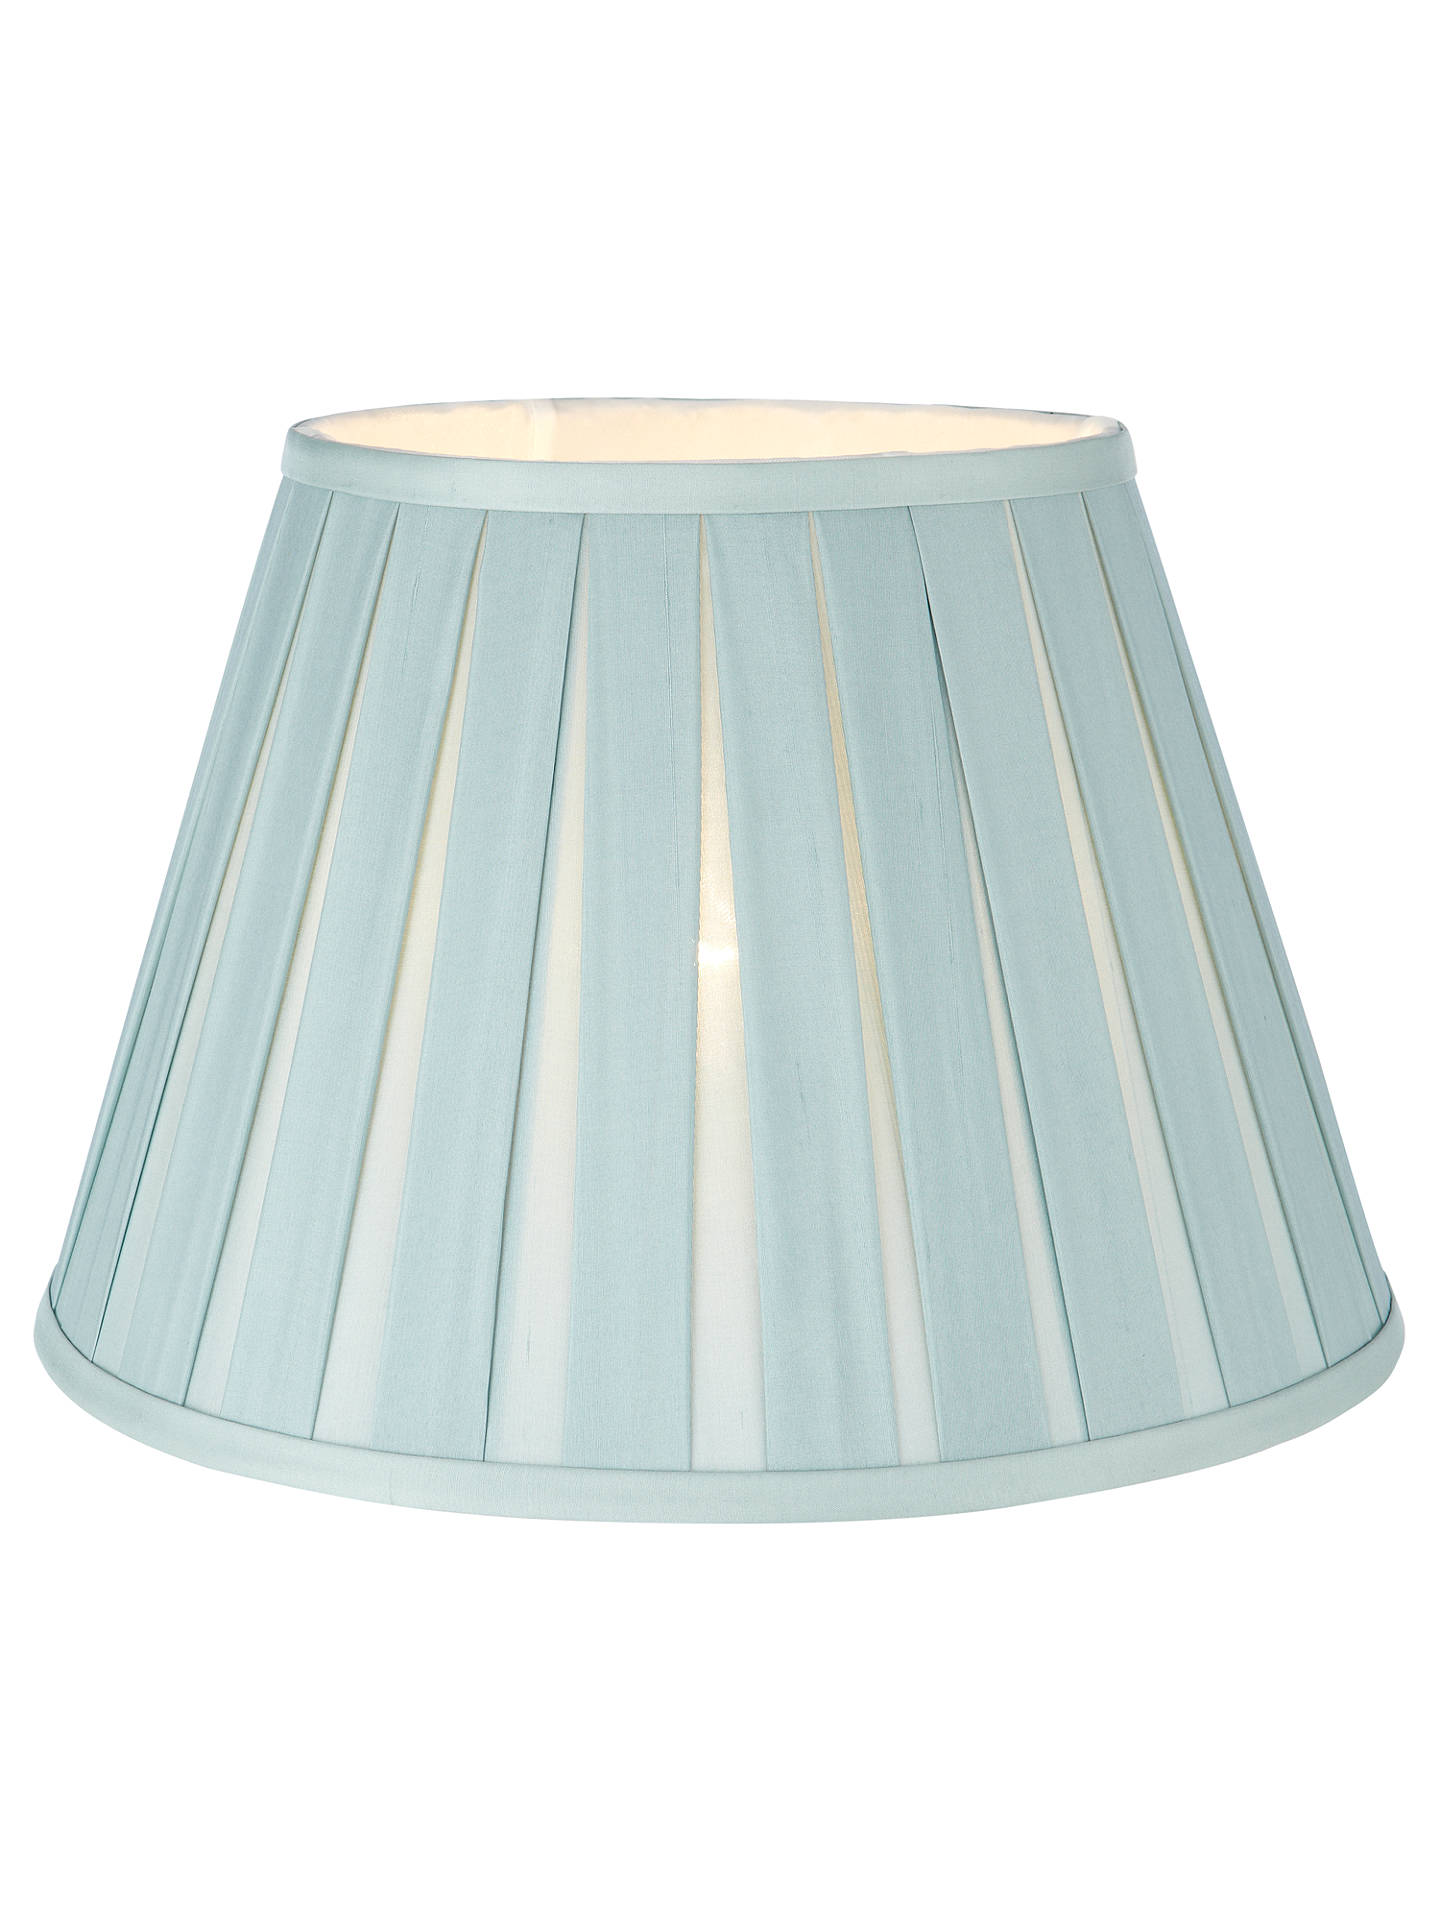 BuyJohn Lewis & Partners Oratorio Silk Tapered Lampshade, Duck Egg, Dia. 25cm Online at johnlewis.com